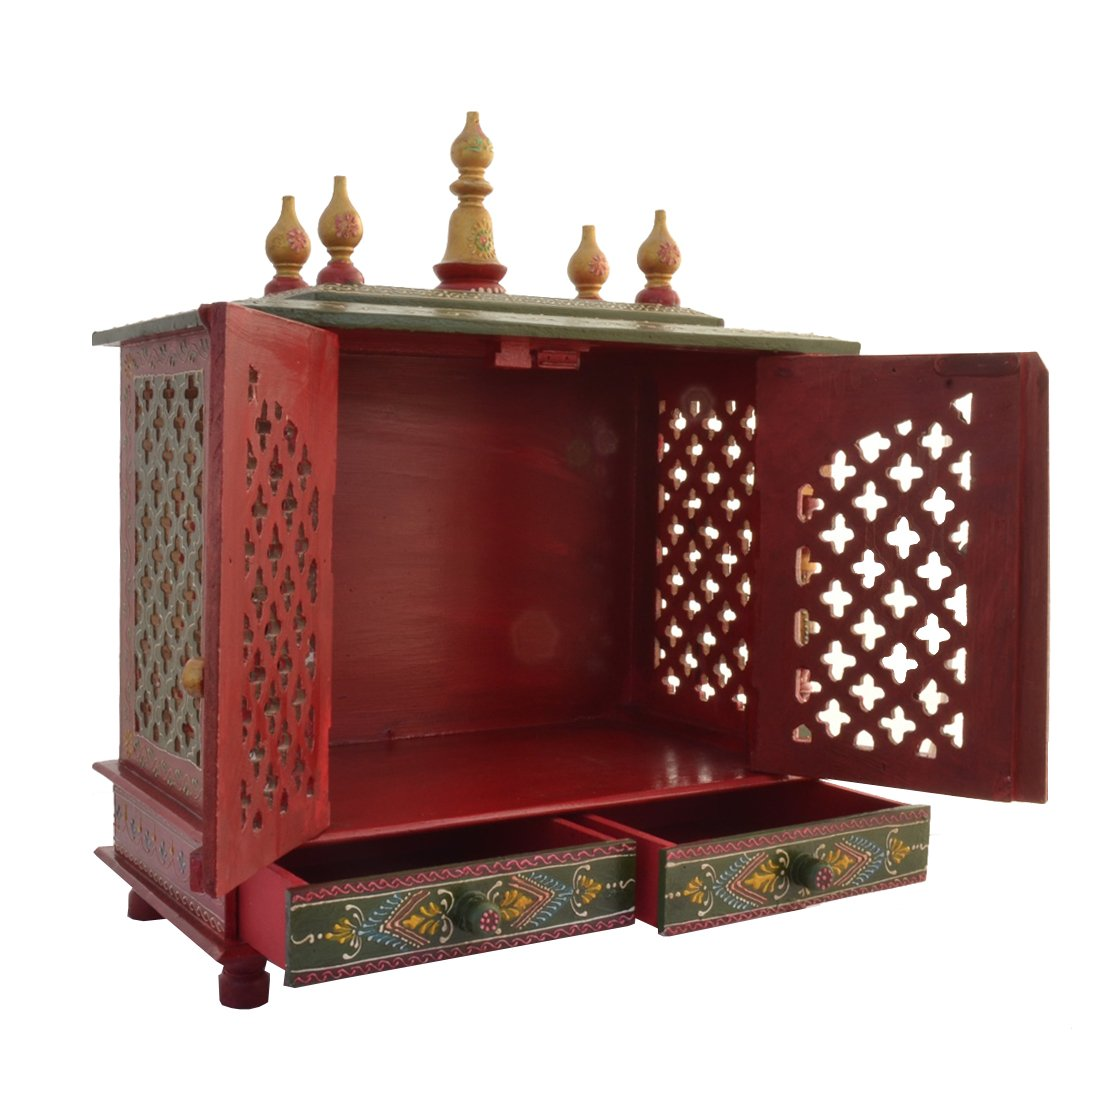 Buy Wooden Temple/ Home Temple/ Pooja Mandir/ Pooja Mandap/ Temple For Home  With White Light Online At Low Prices In India   Amazon.in